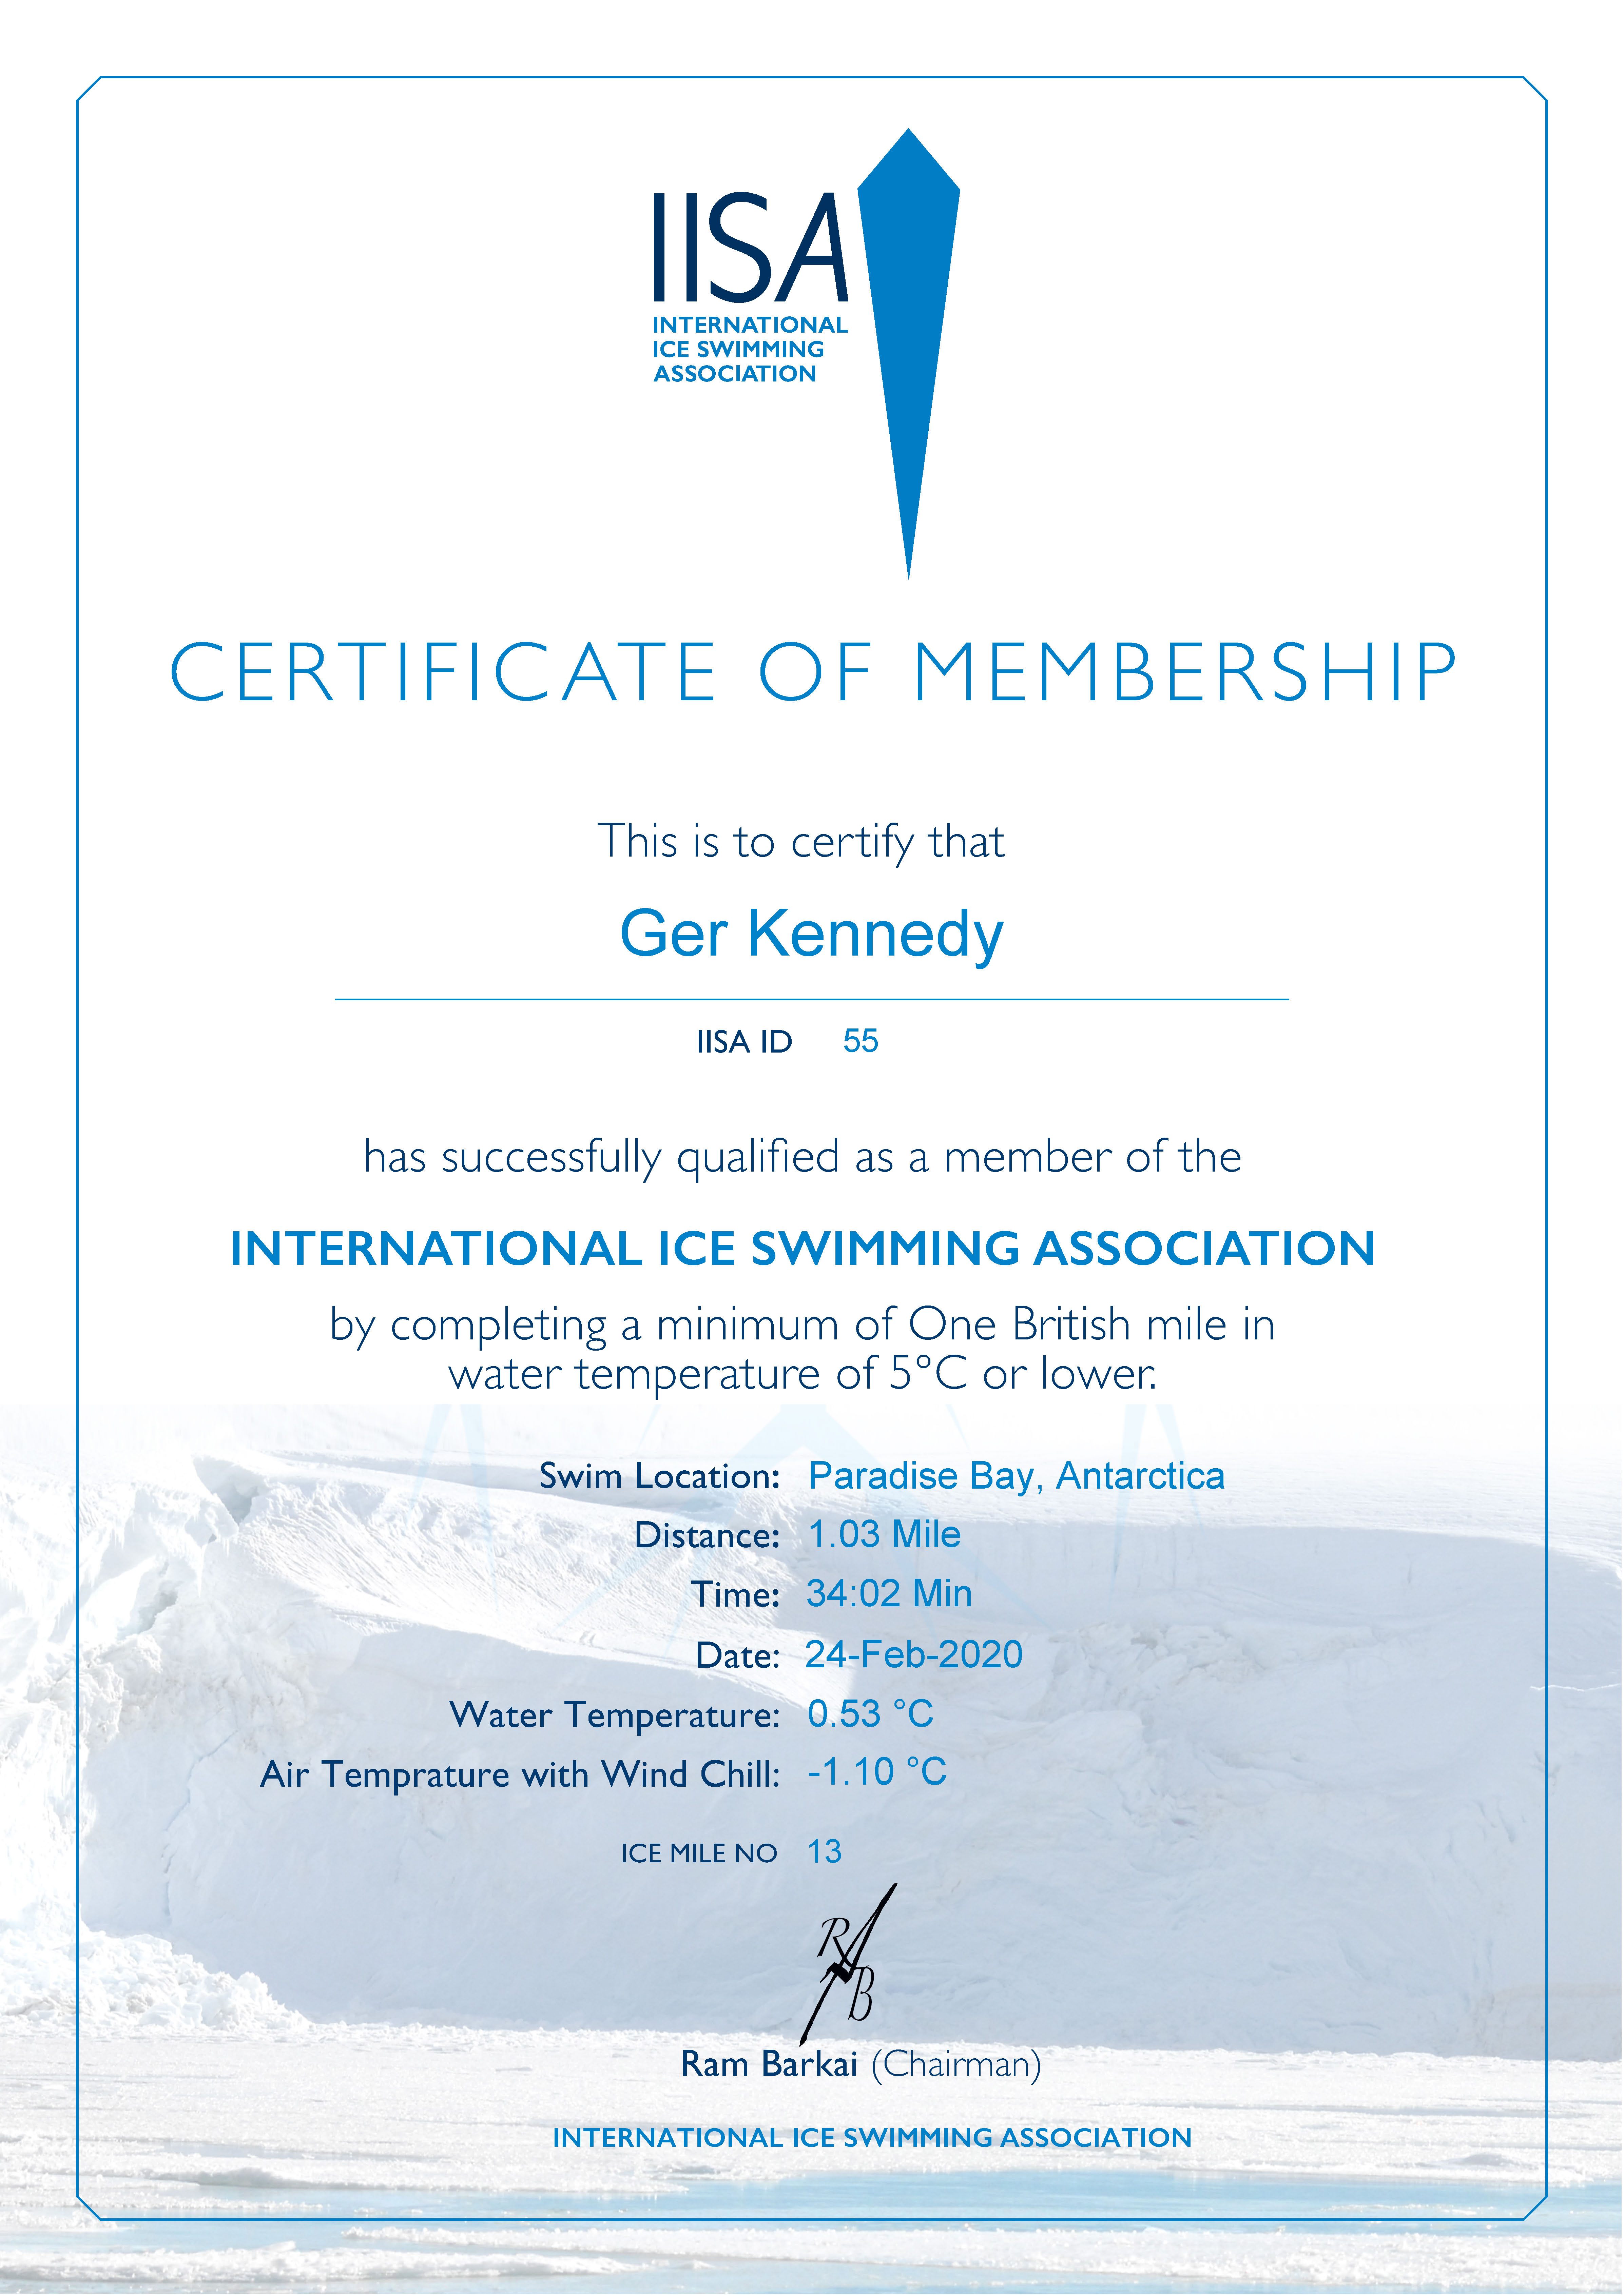 Ice Mile Certificate - Ger Kennedy